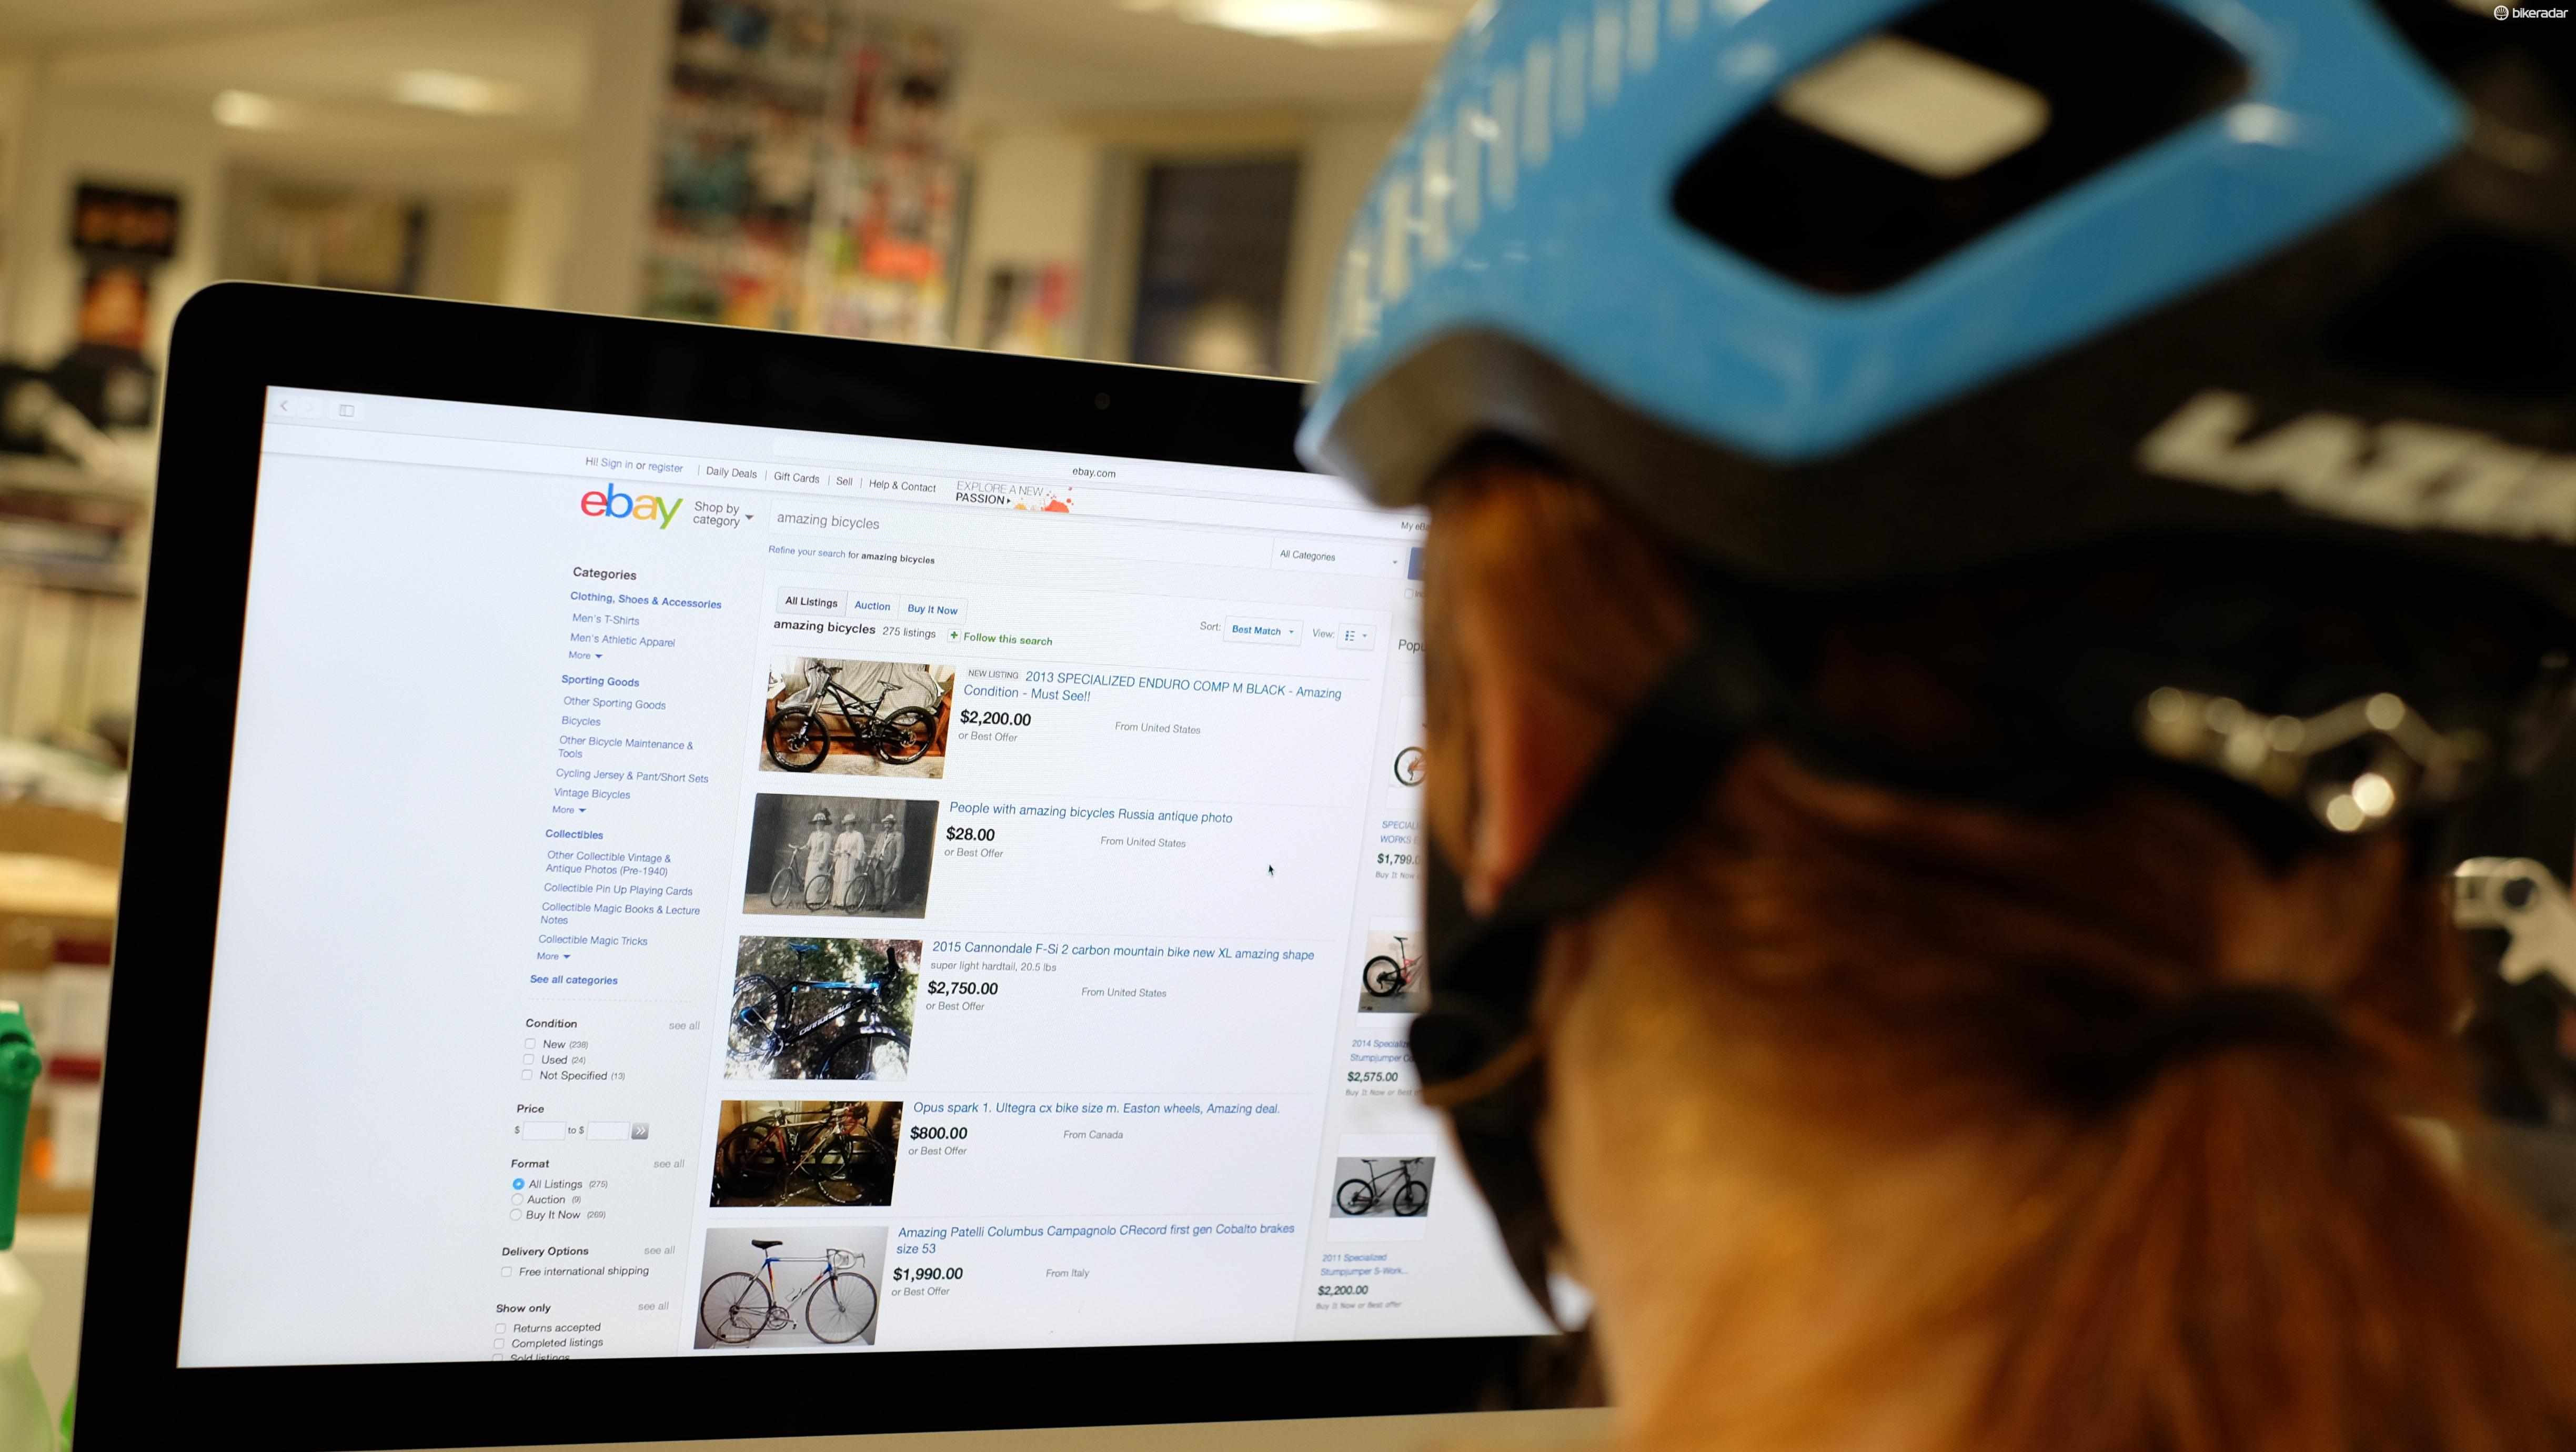 Thinking of buying a bike on eBay? Read our tips first